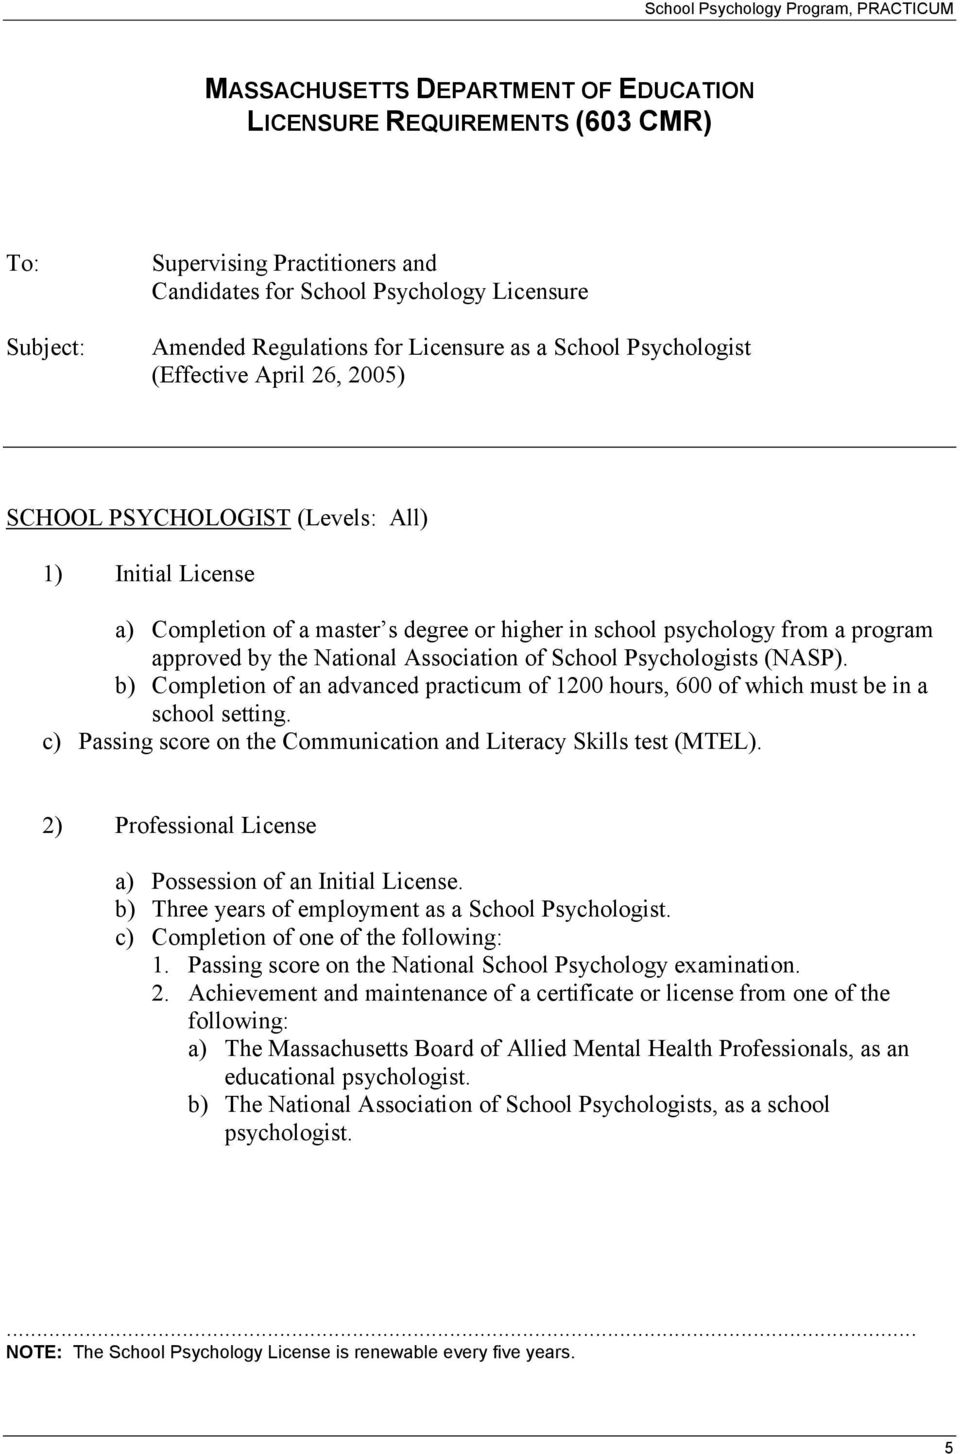 National Association of School Psychologists (NASP). b) Completion of an advanced practicum of 1200 hours, 600 of which must be in a school setting.